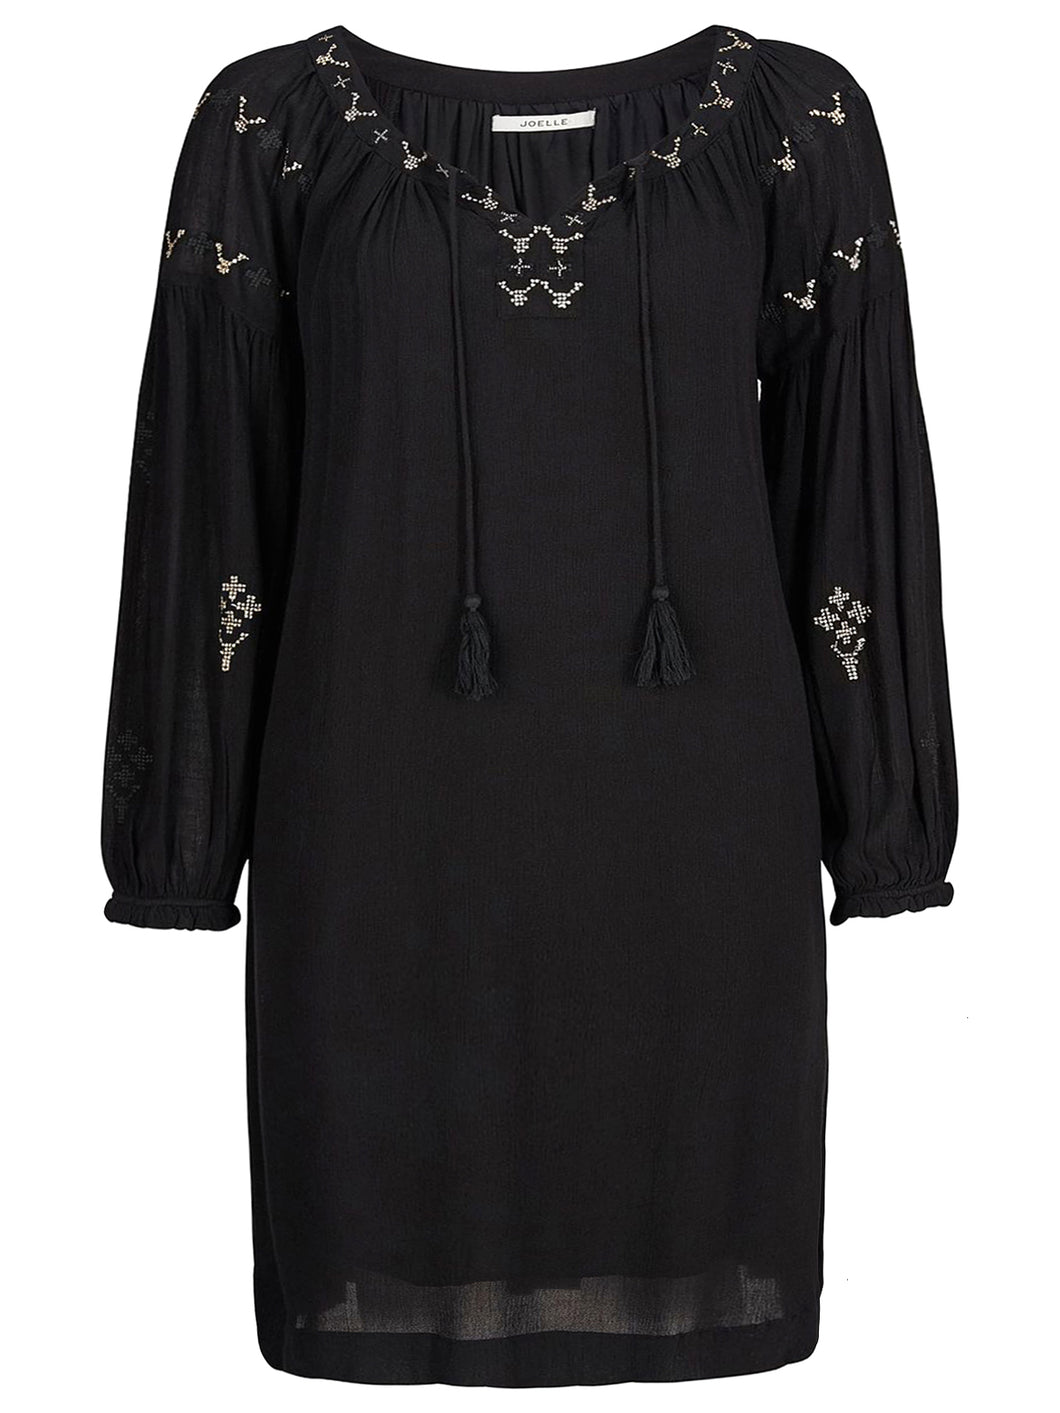 BLACK Embroidered Wildflower BoHo Dress – UK Size 12/14 to 24/26 (EU 34/36 to 50/52)